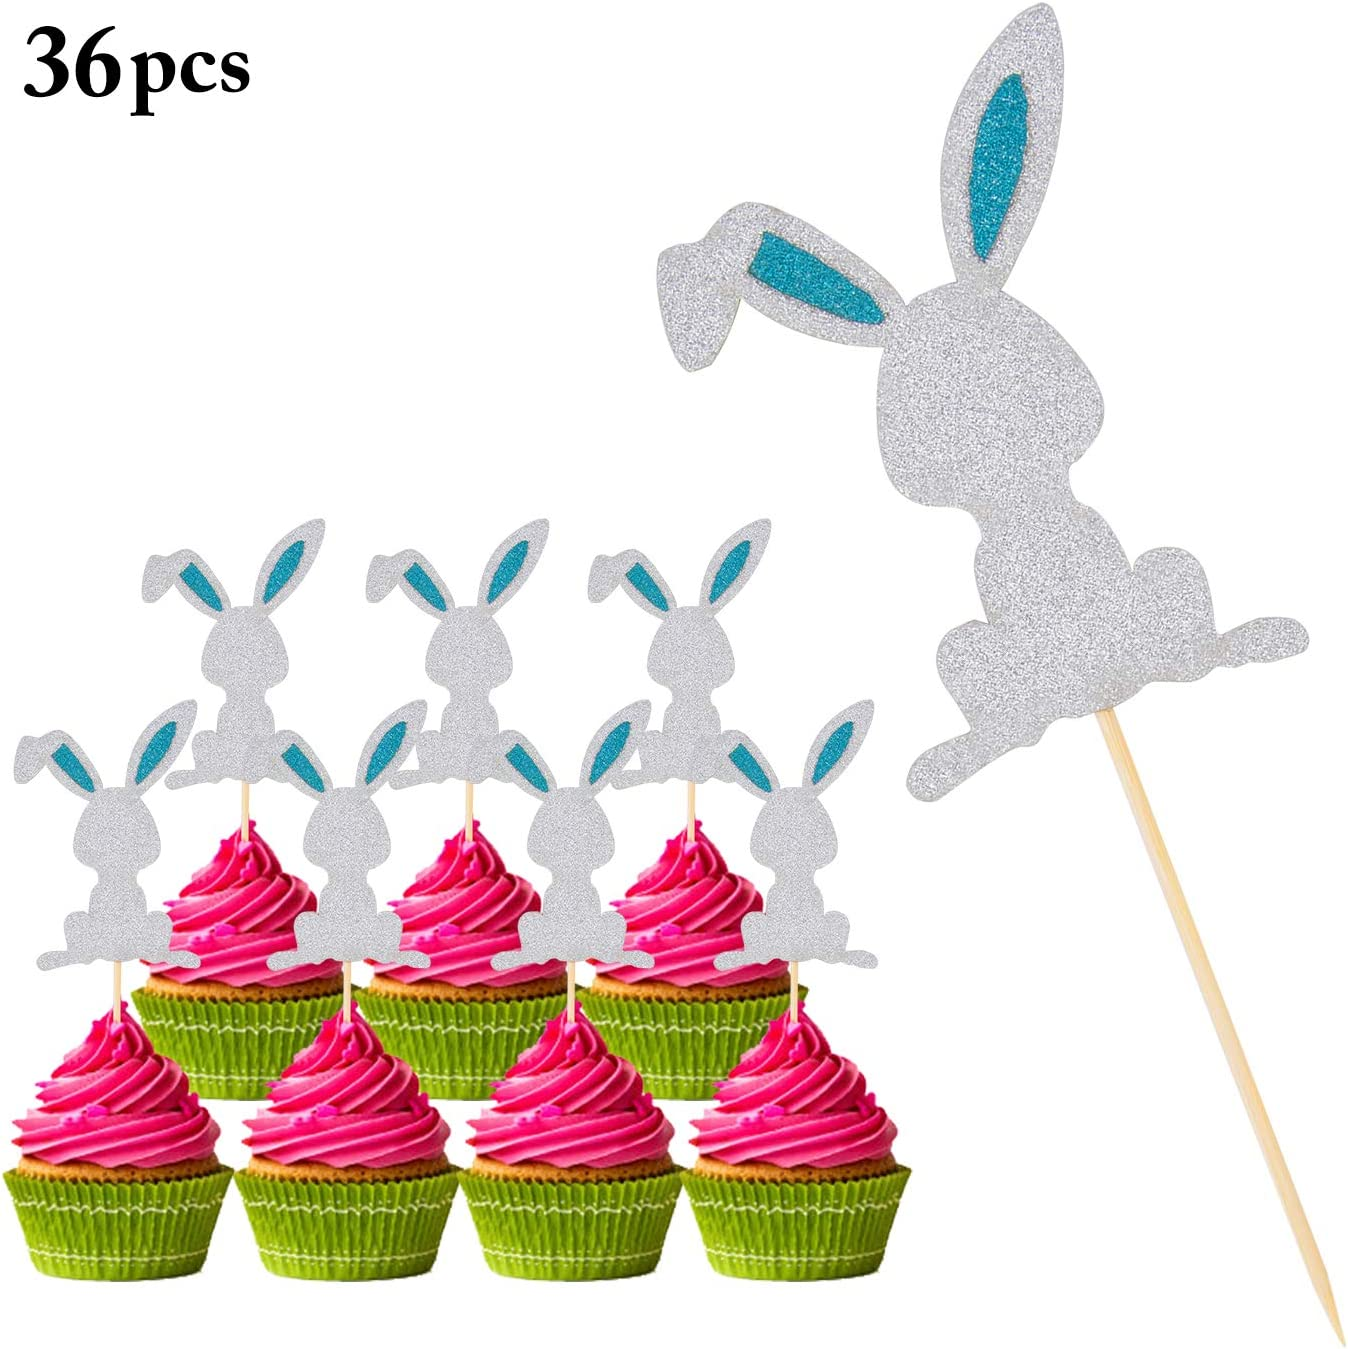 24pcs Paper Sweet Love Flower Cupcake Food Pick Topper Party Decoration